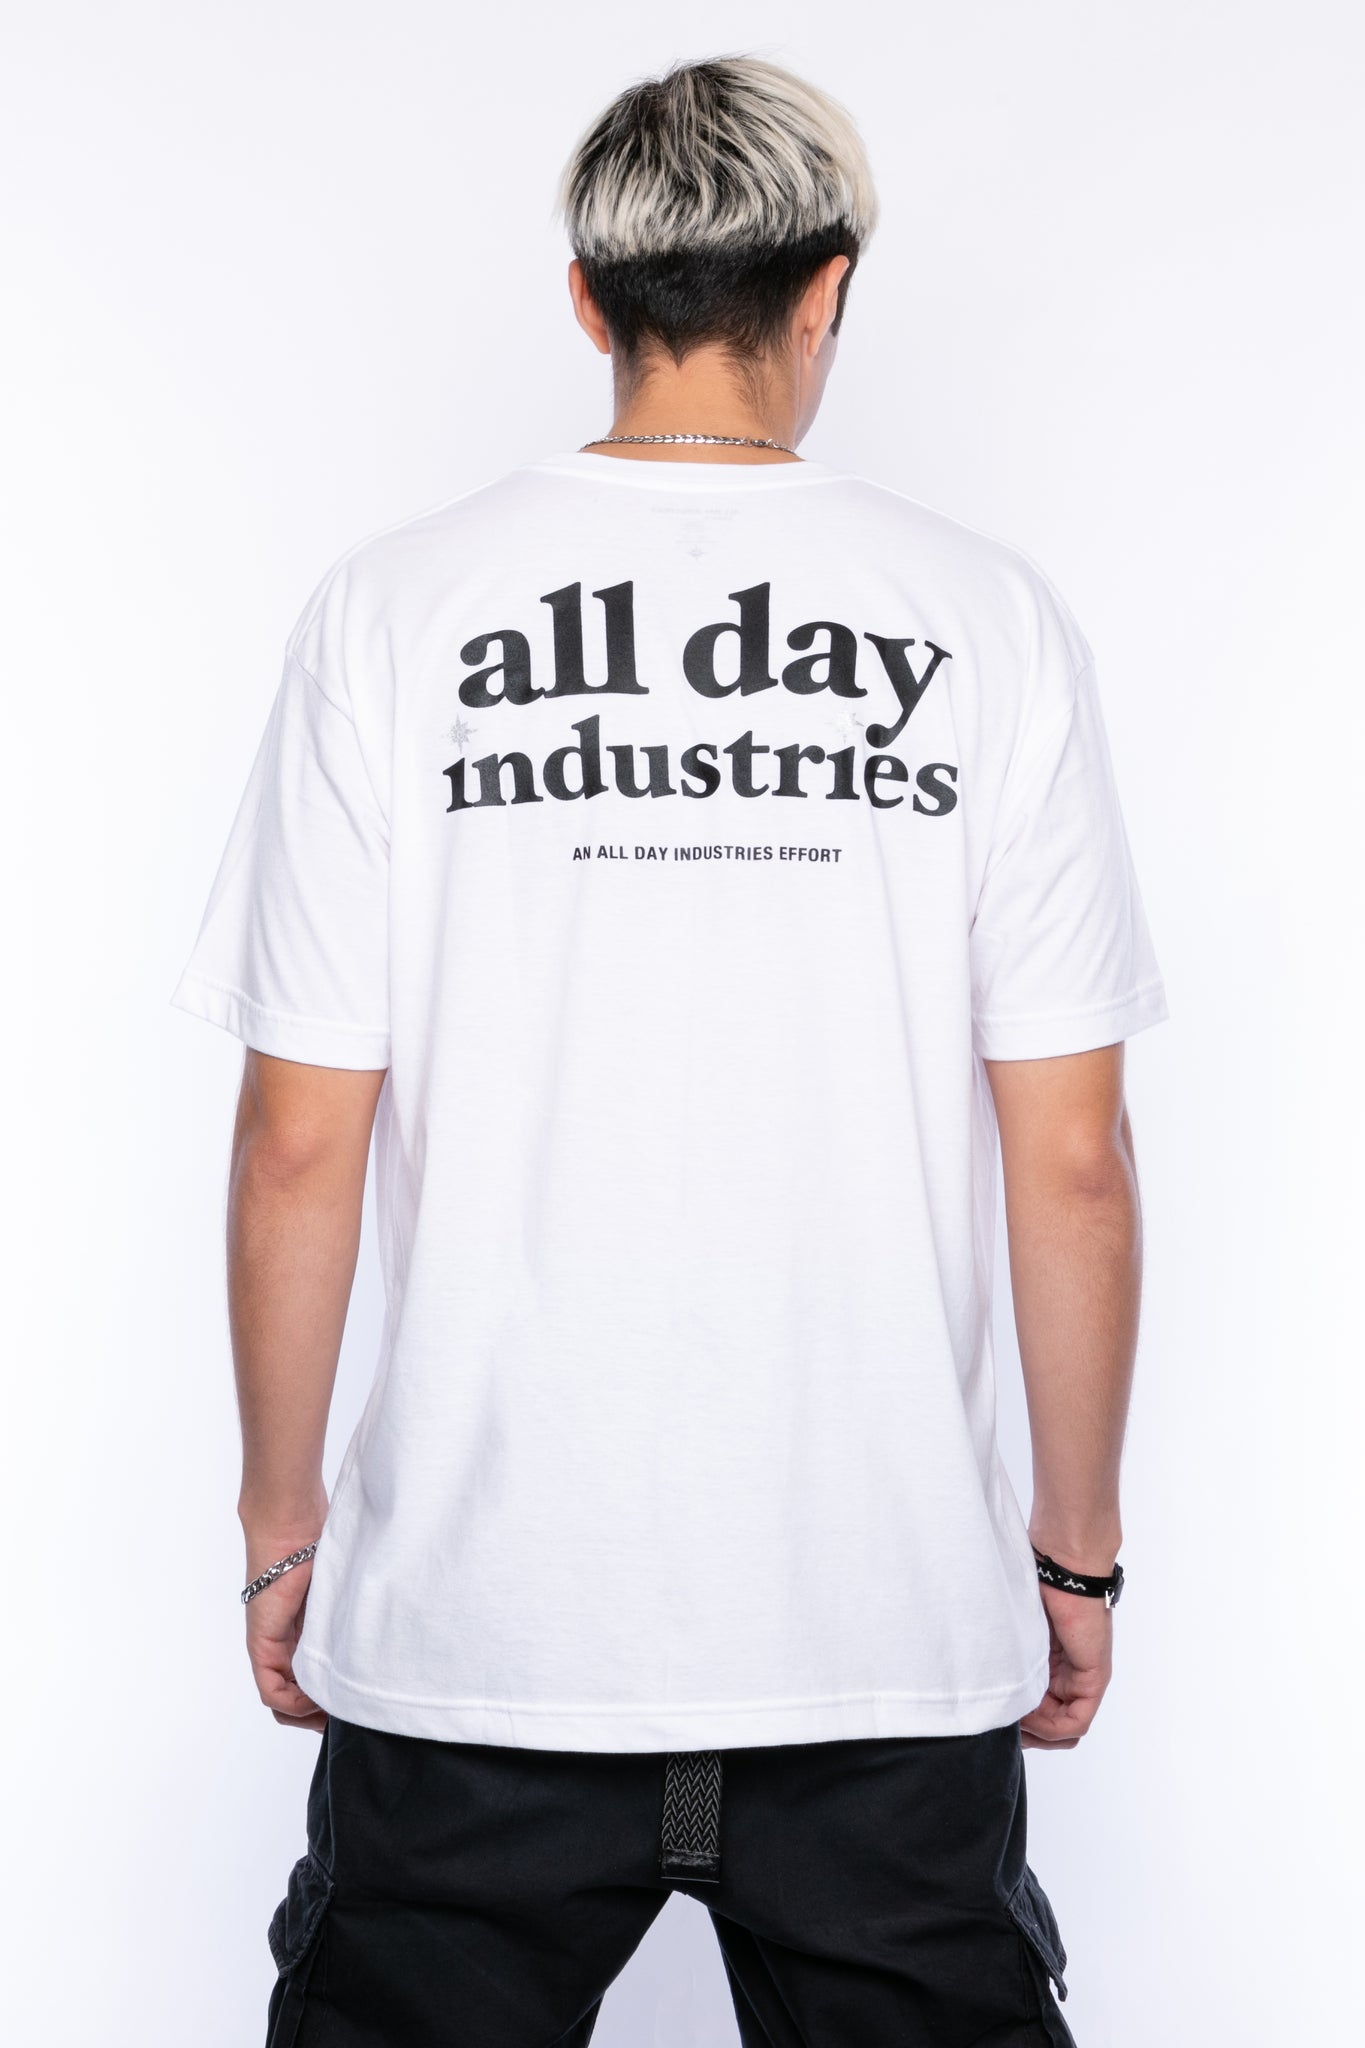 ALL DAY INDUSTRIES LOGO SHIRT - (Powder White)